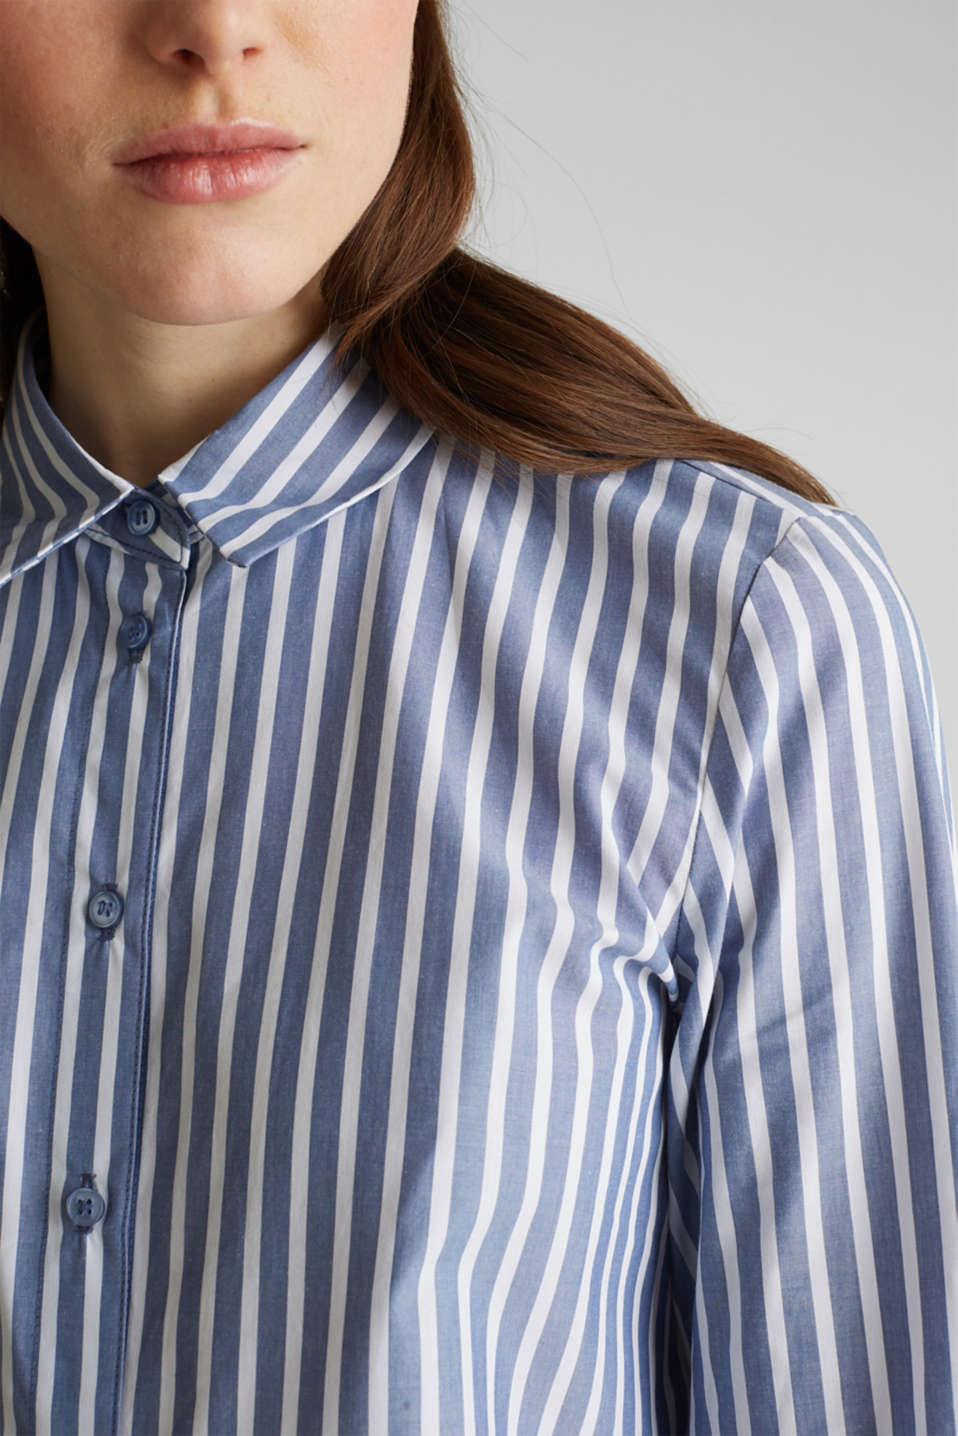 Long blouse with stripes, 100% cotton, BLUE, detail image number 5